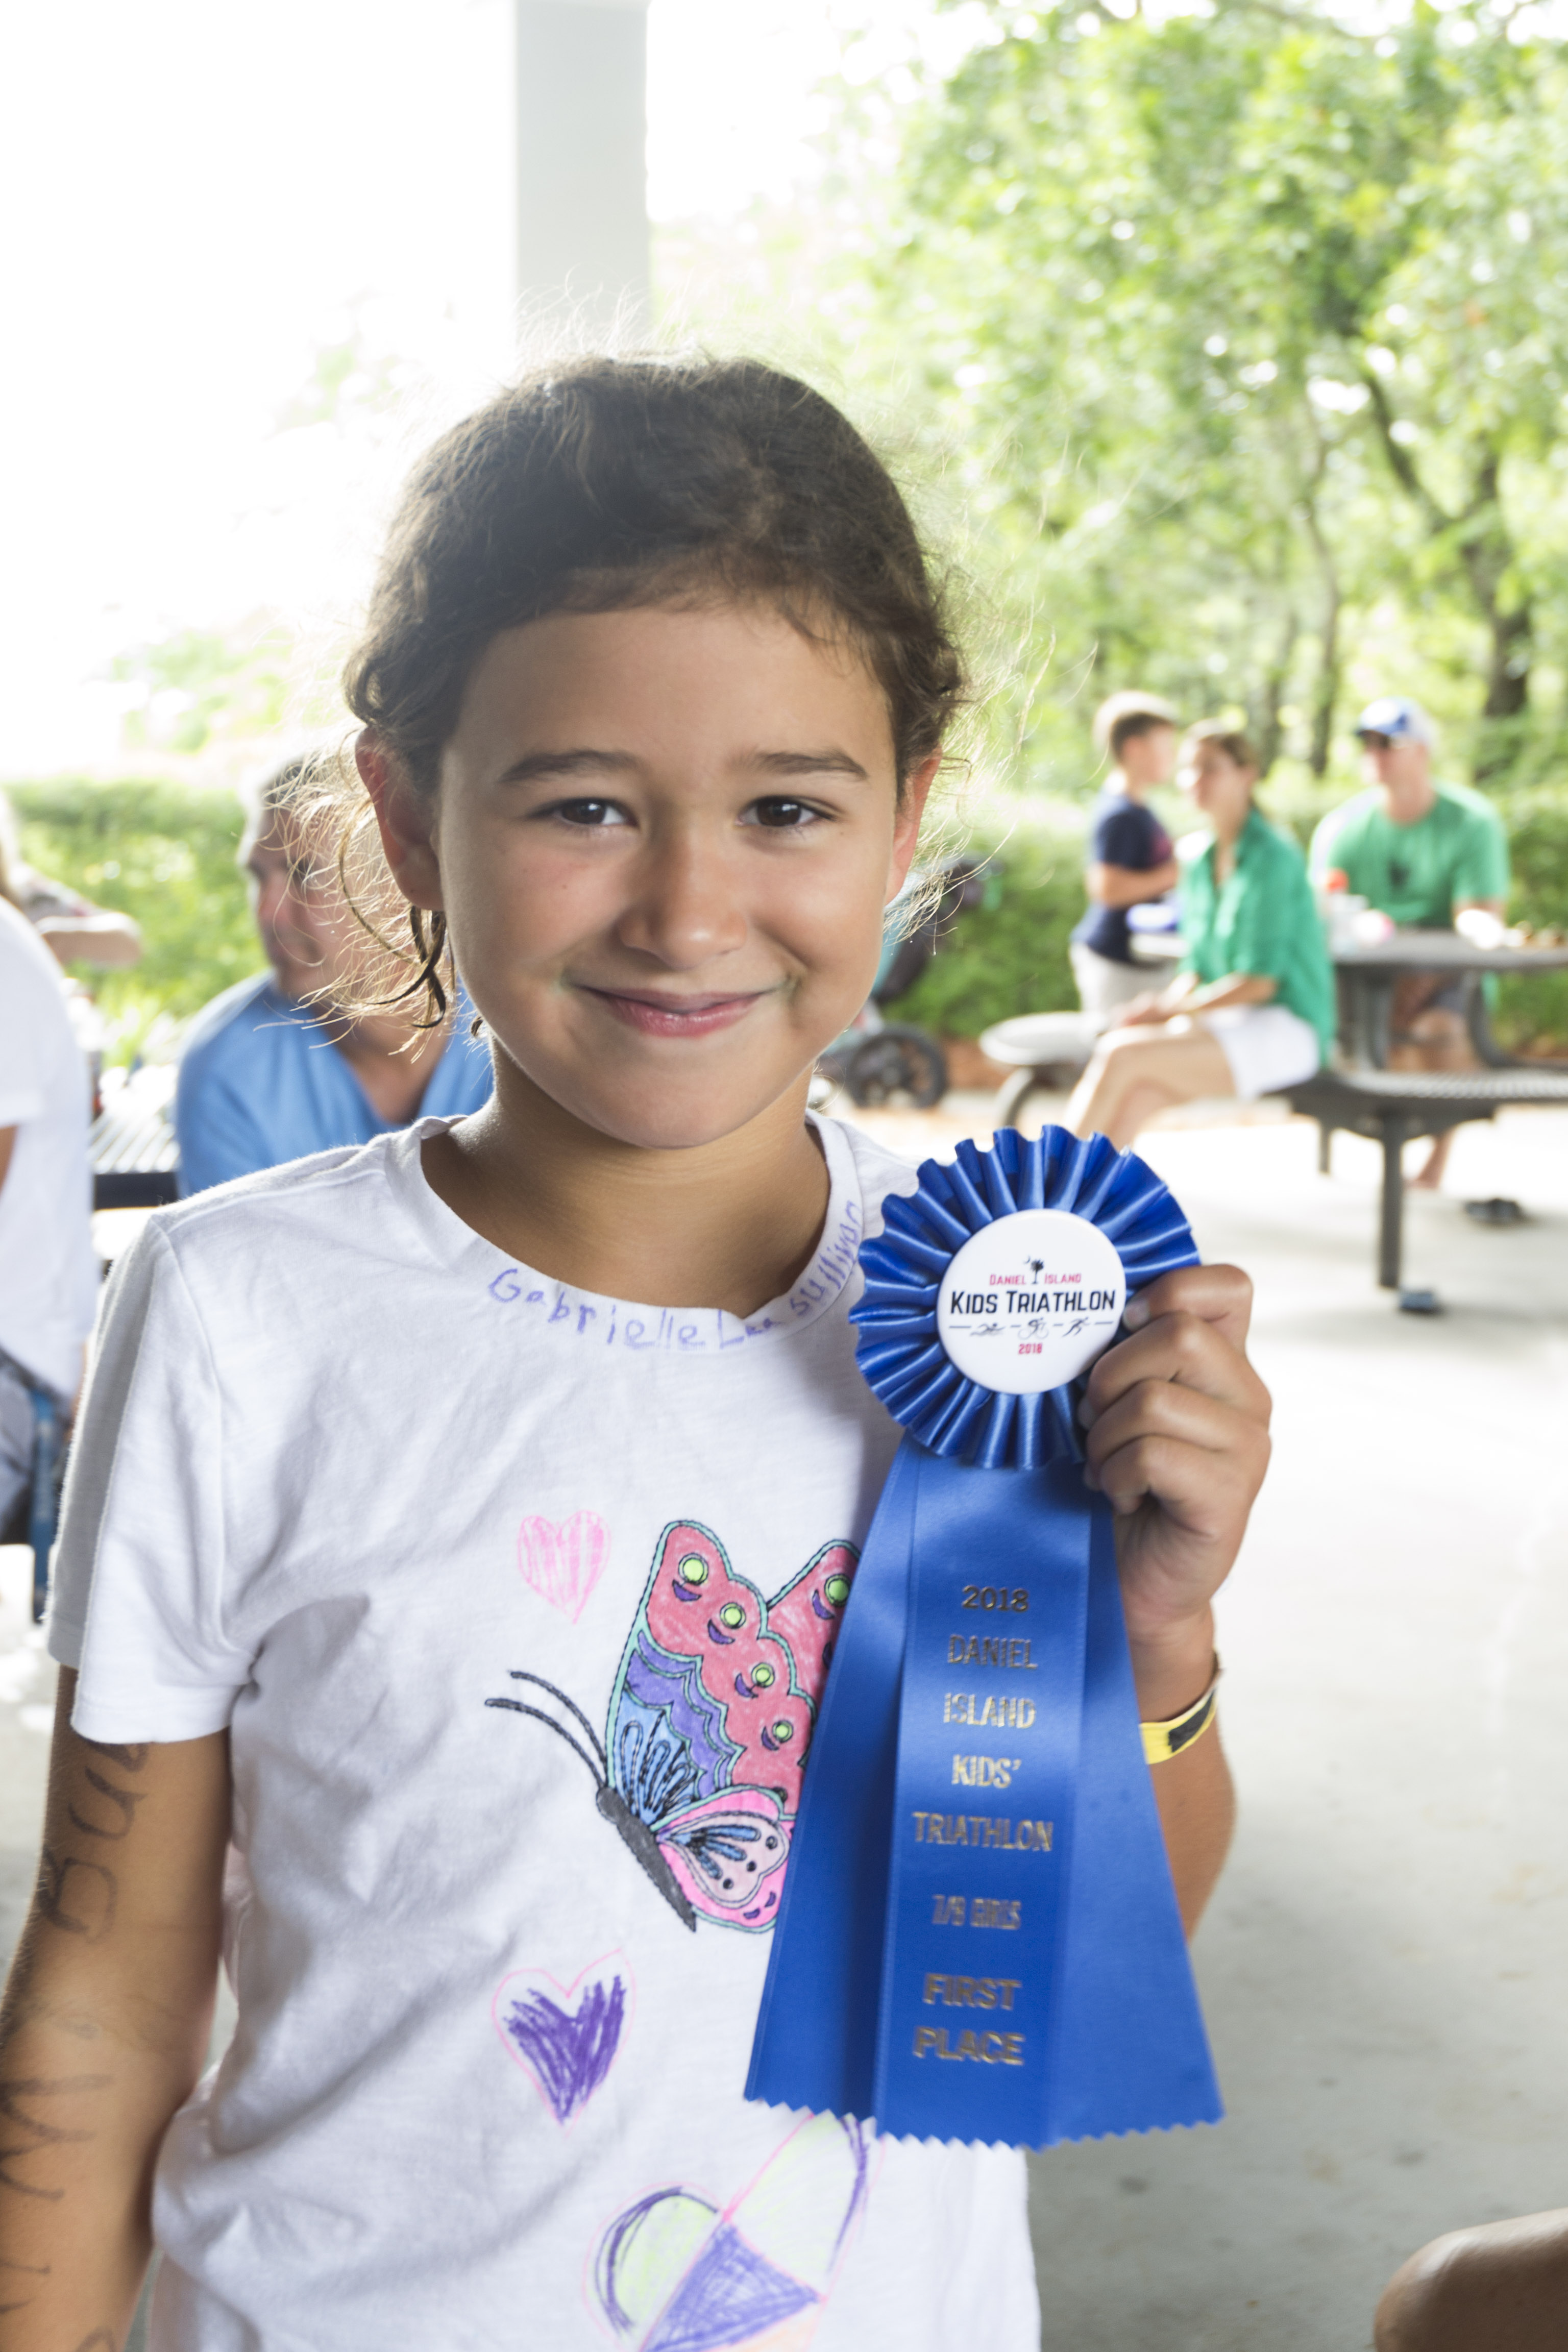 First place winner in the 7-8 girls' age group – Gabrielle Sullivan.